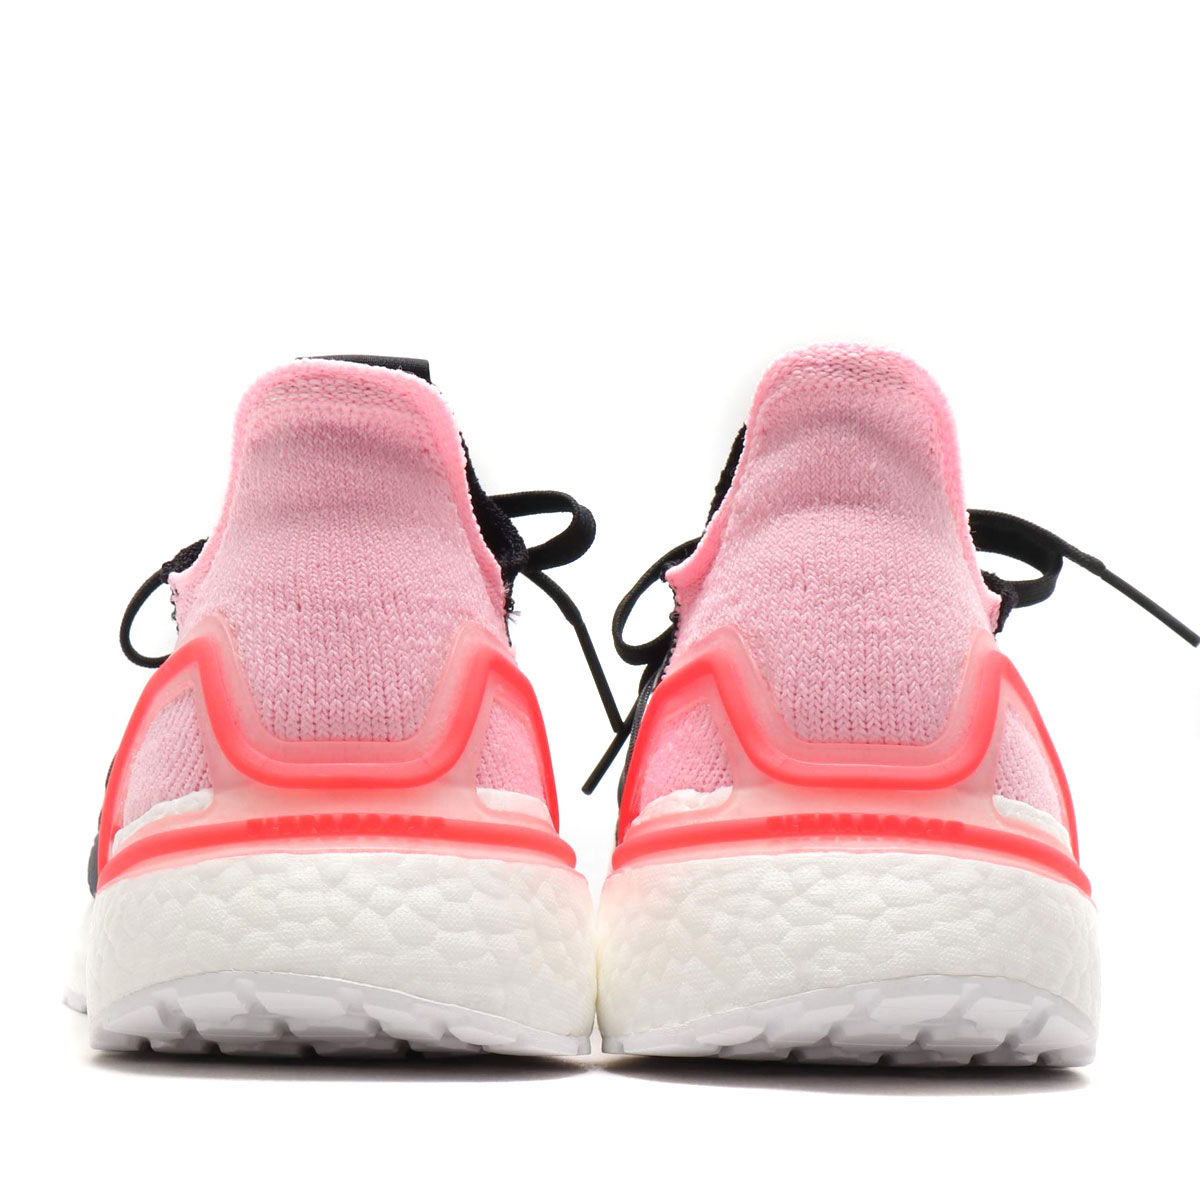 size 40 45580 a57da adidas UltraBOOST 19W (CORE BLACK ORCHID TINT ACTIVE RED) (Adidas ultra  boost 19W)